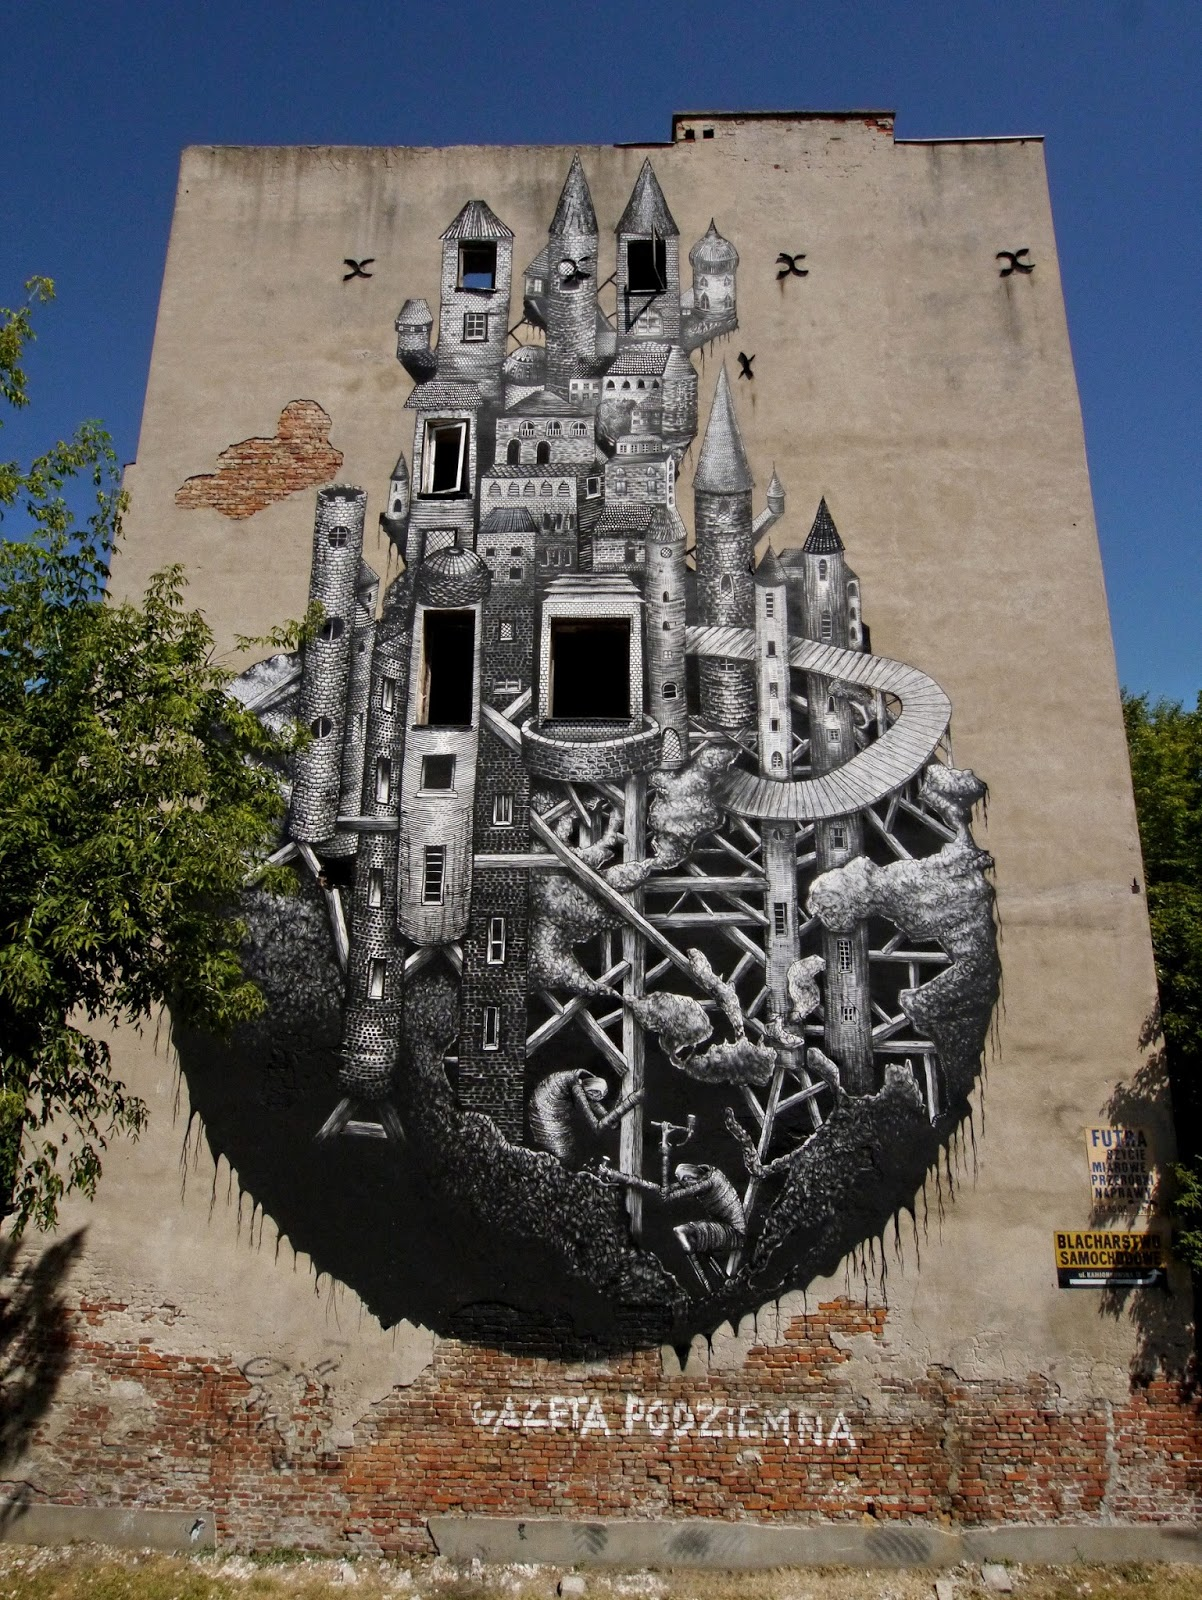 phlegm-new-mural-for-street-art-doping-festival-20